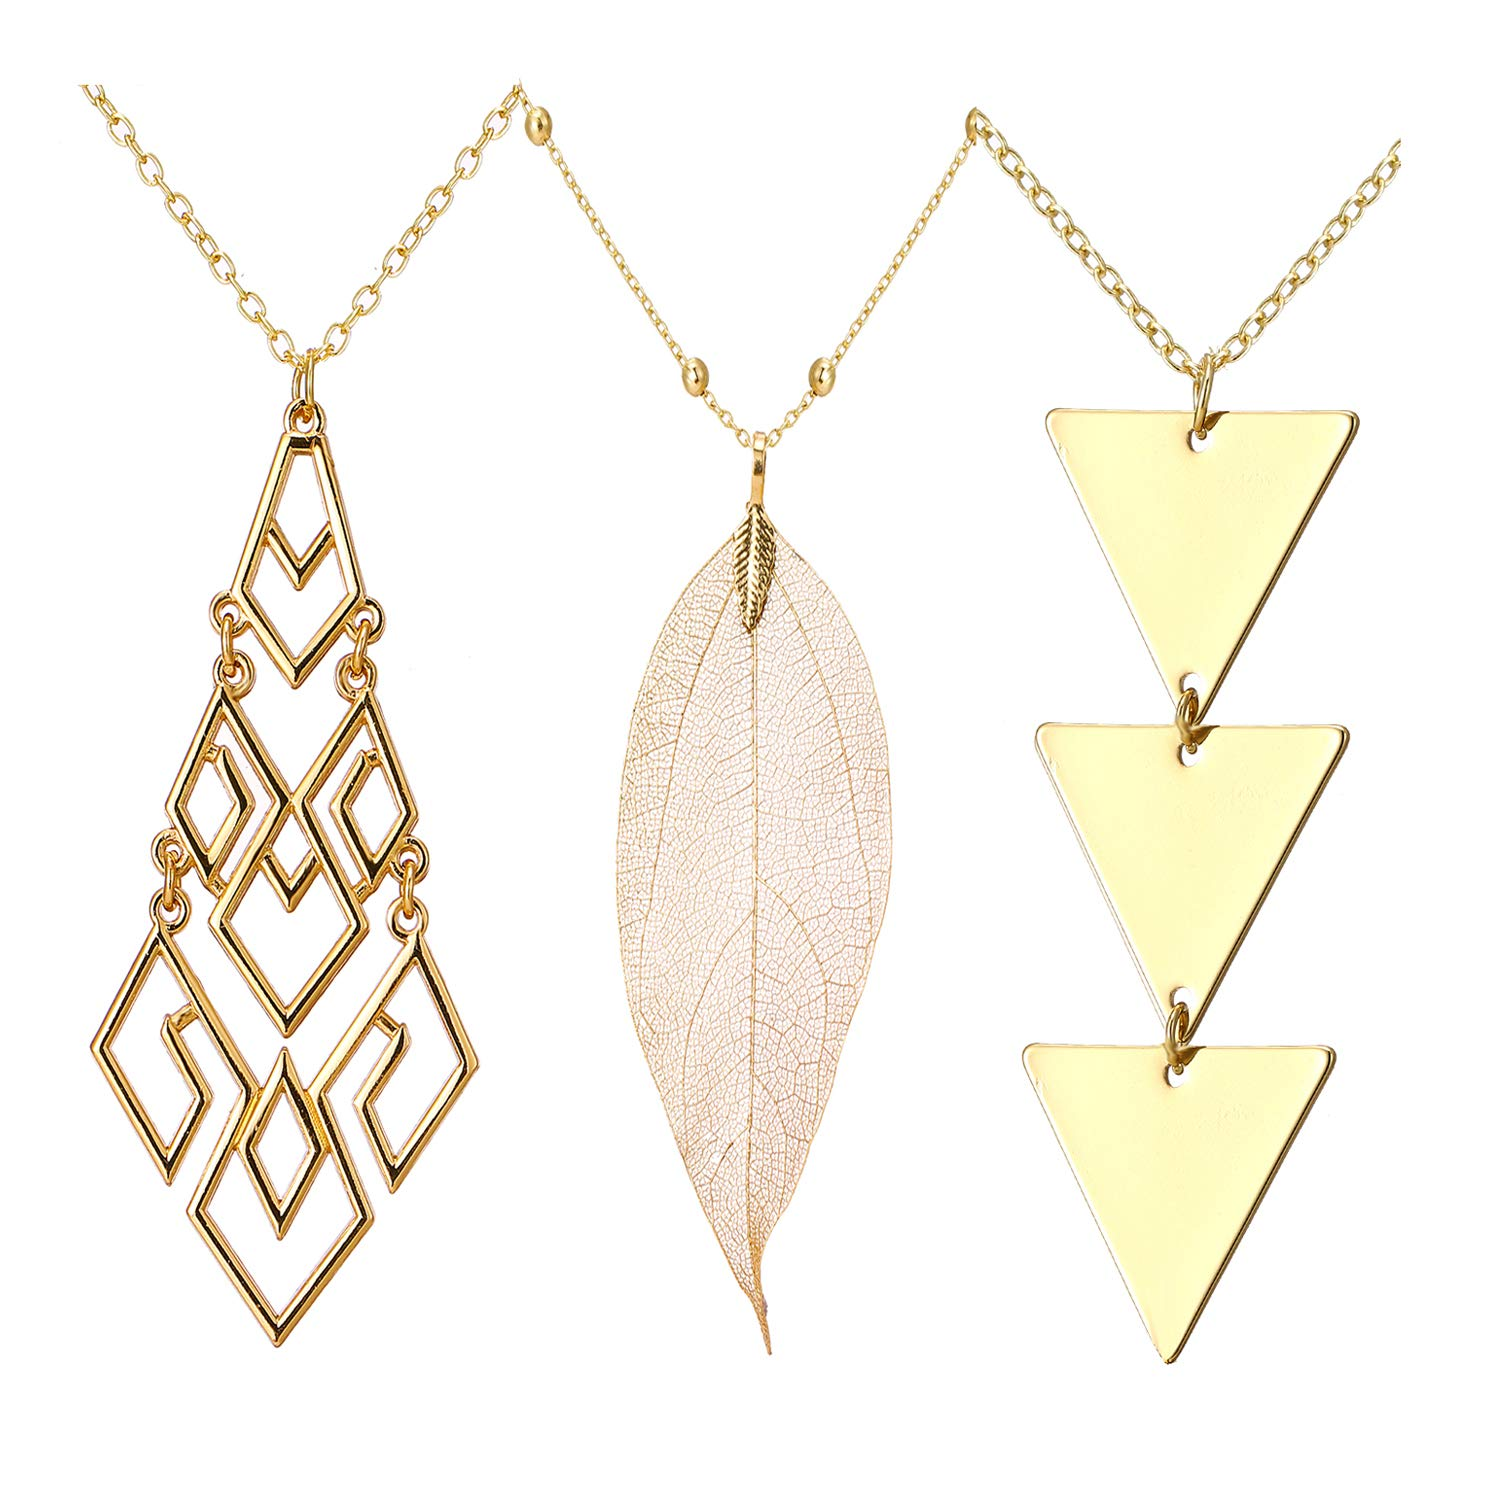 4Pcs Gold Long Necklaces for Women Silver Geometric Y Necklace Dainty Jewelry Set (A) by J Meng